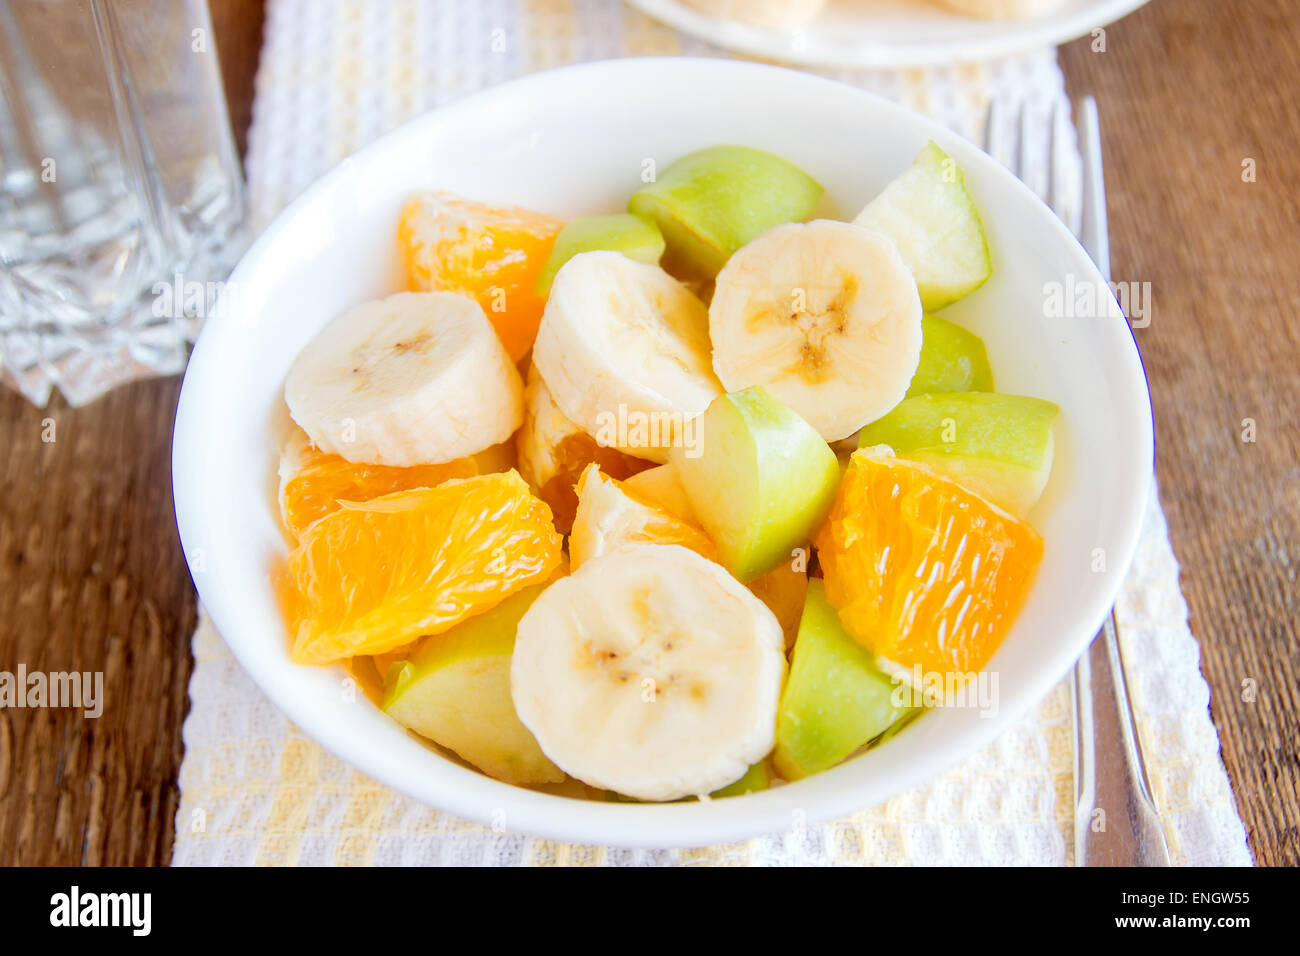 Fruit salad on wooden table, close up horizontal - Stock Image